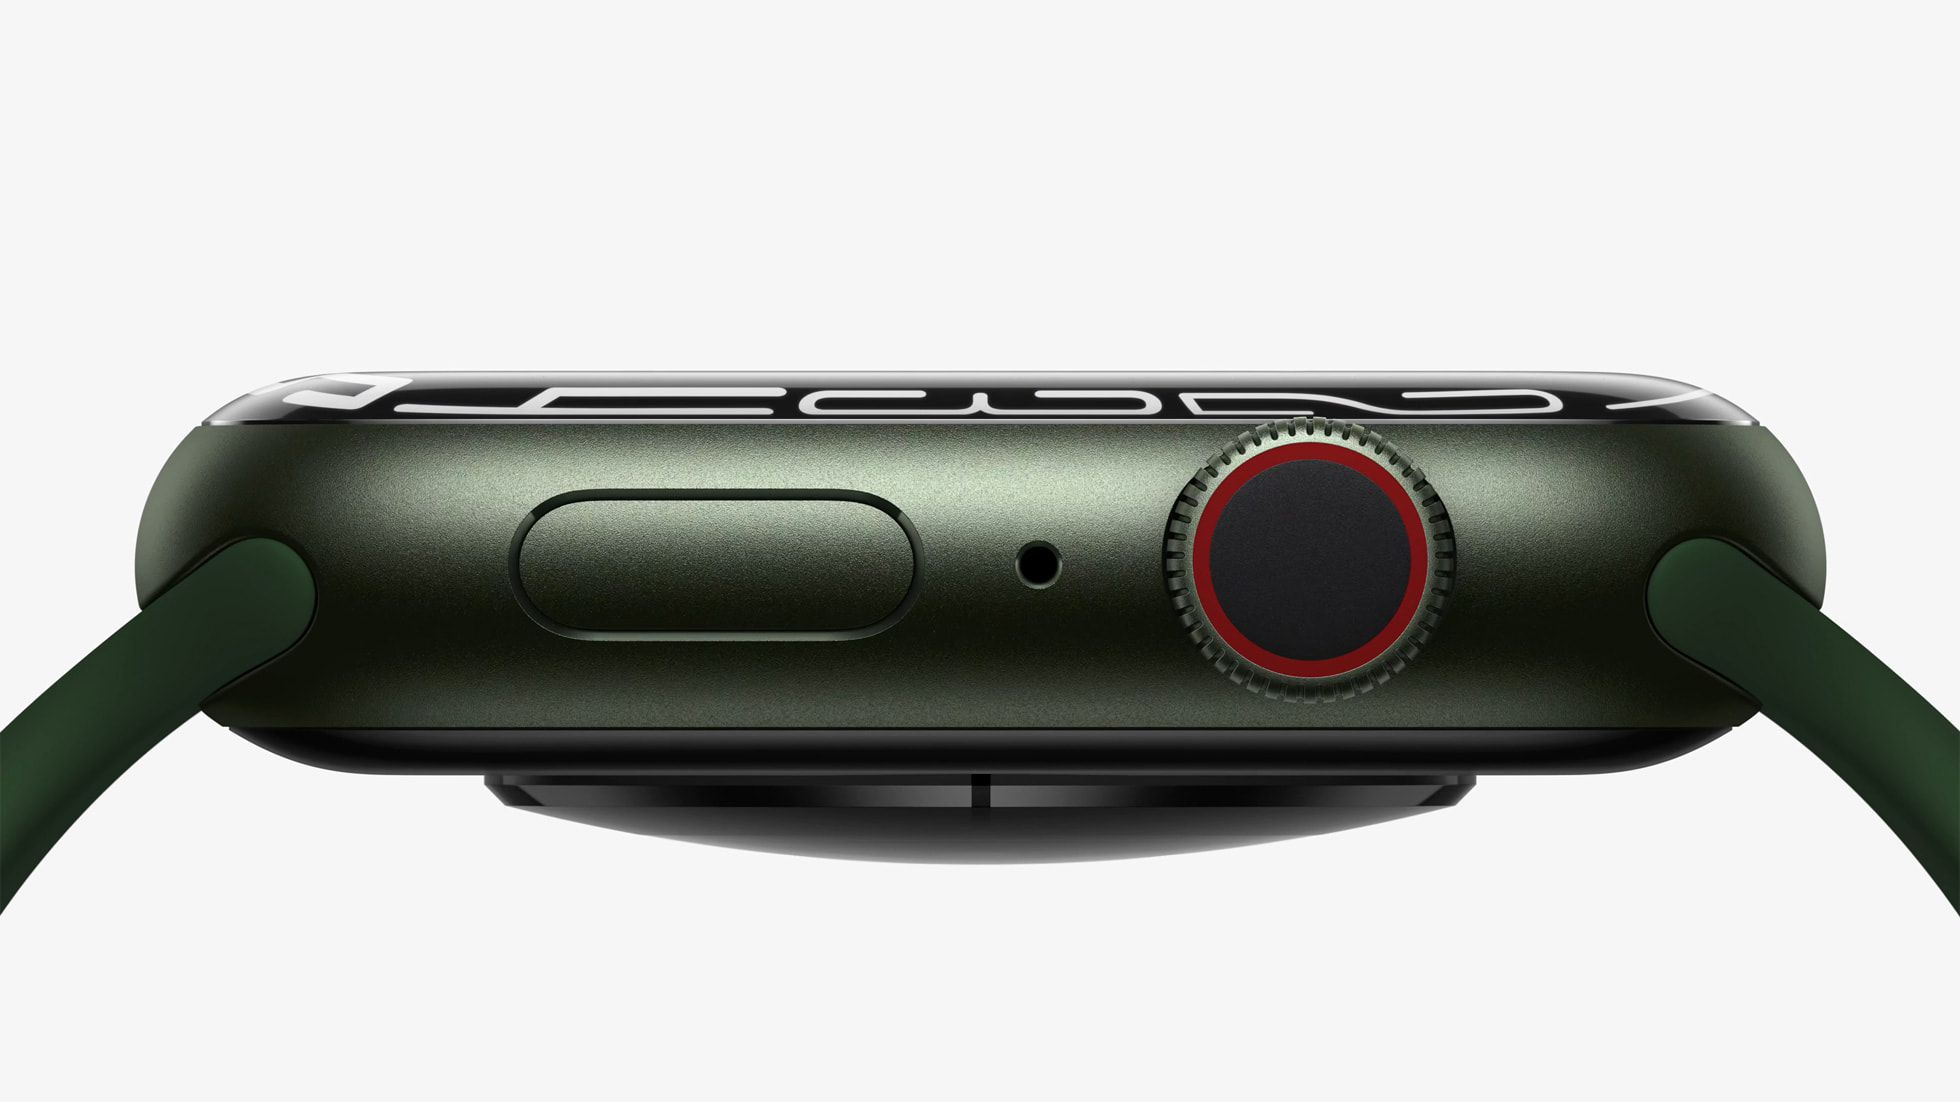 Sideview of the Green Apple Watch 7